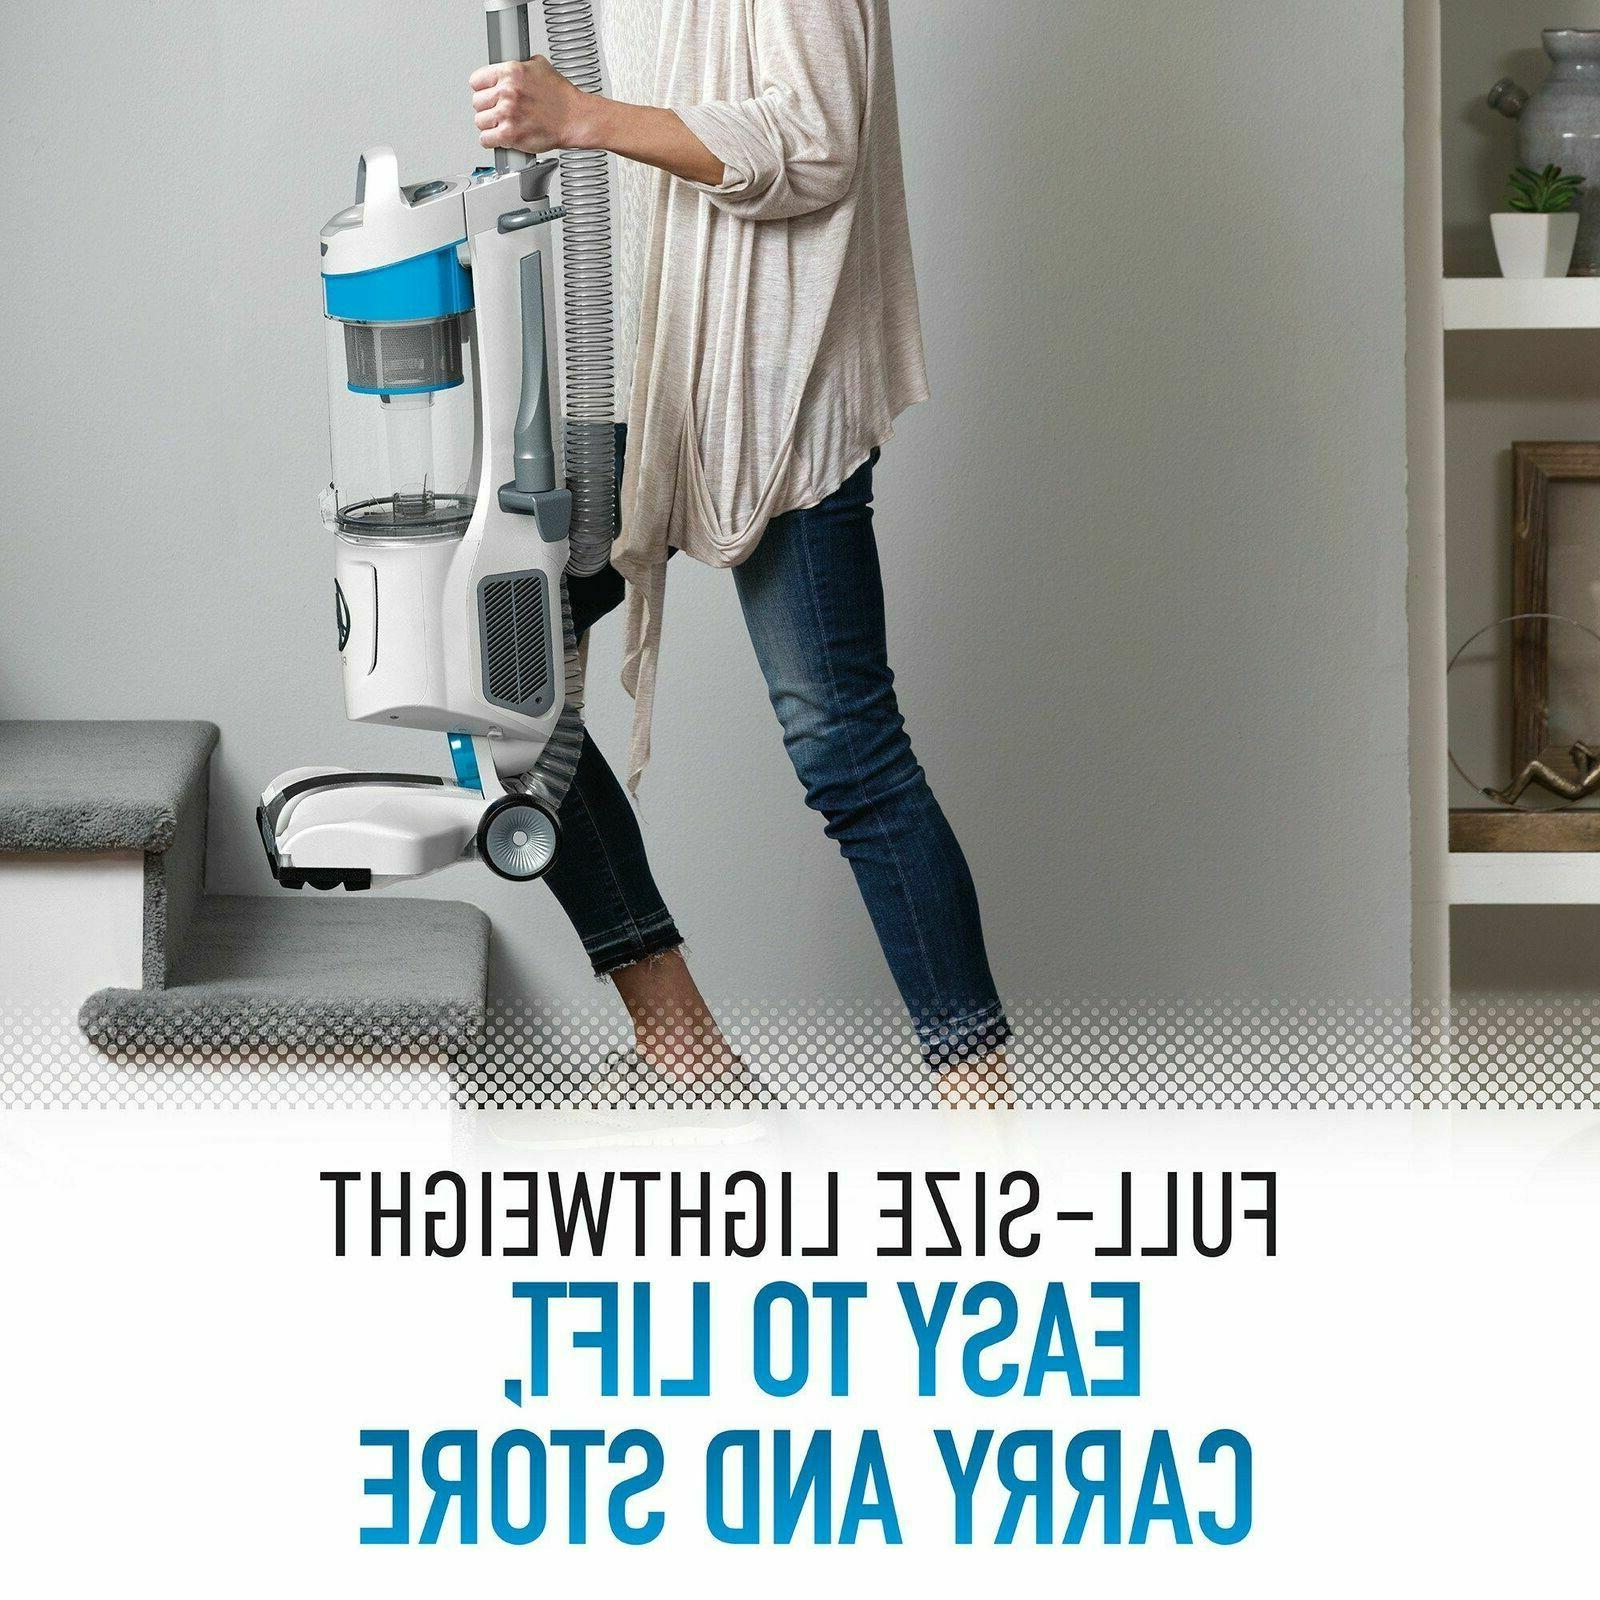 Hoover Bagless Upright Vacuum Cleaner